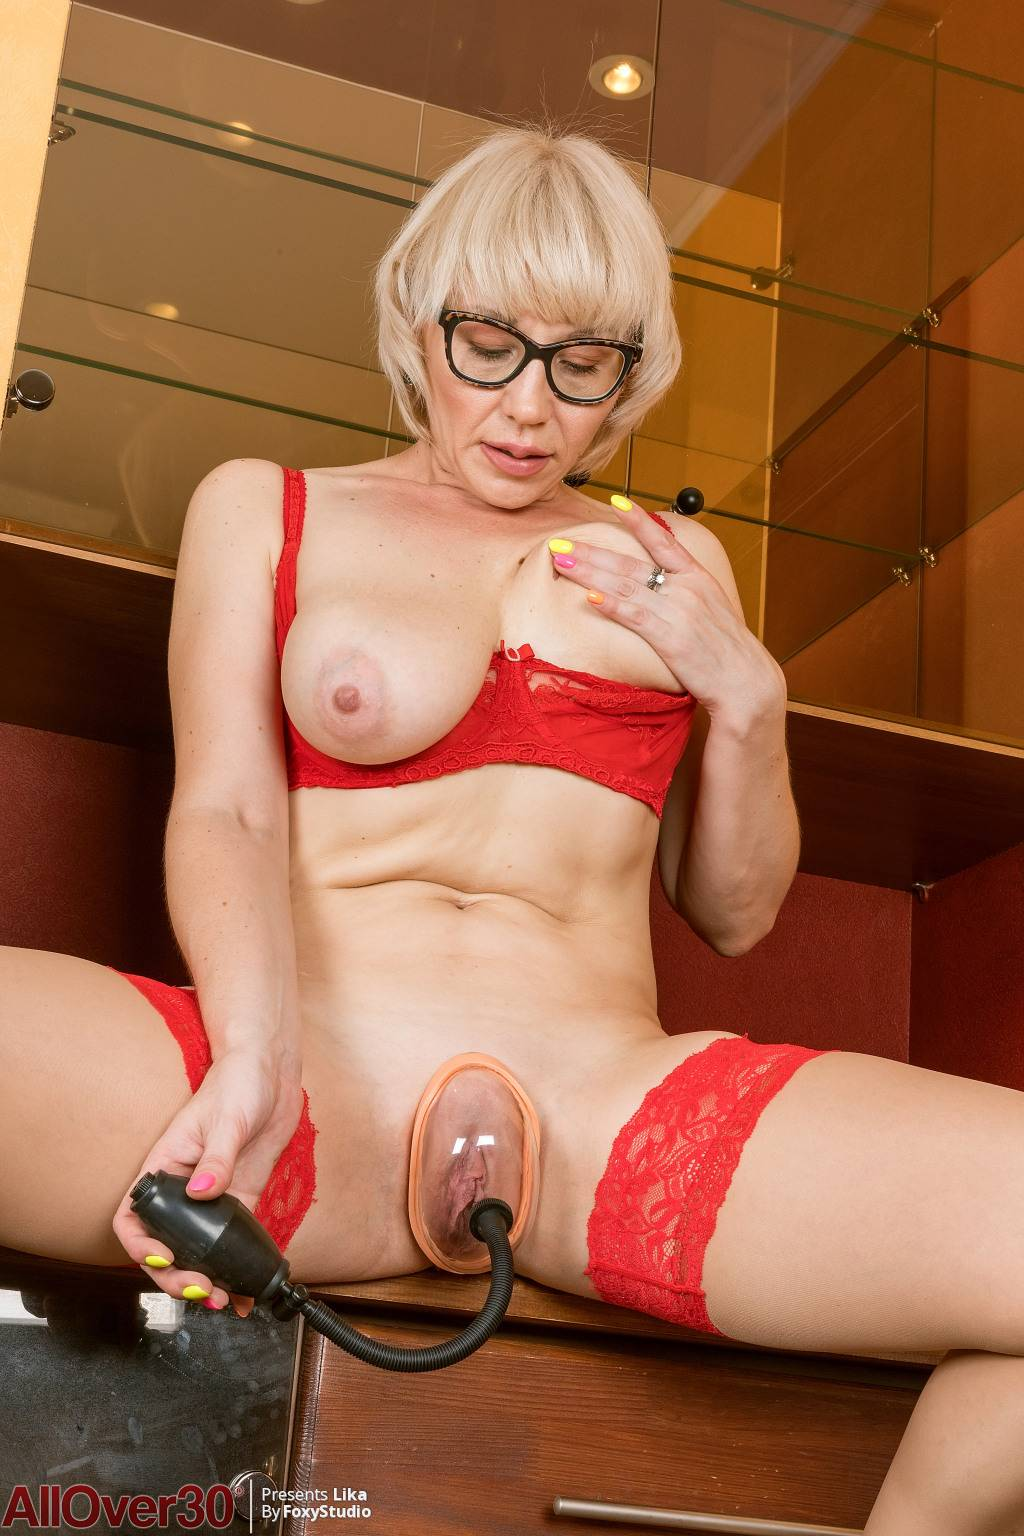 Blonde mature Lika playing with a pussy pump at AllOver30